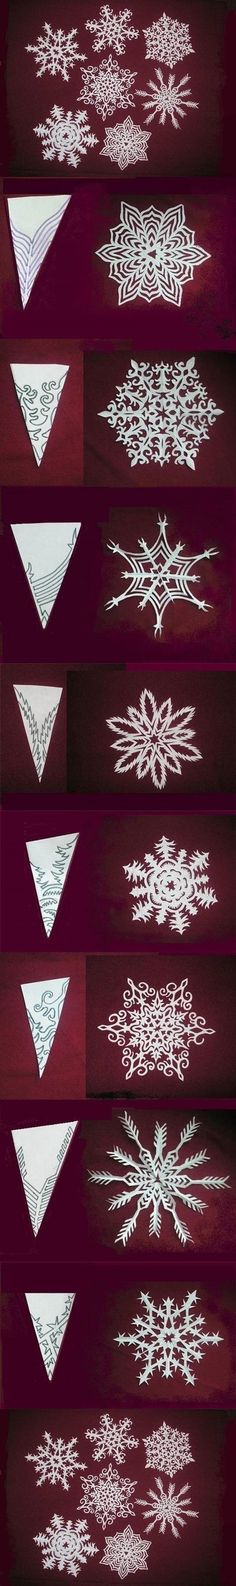 Wonderful DIY Paper Snowflakes With Pattern DIY crafts, winter crafts, winter fun | WonderfulDIY.com